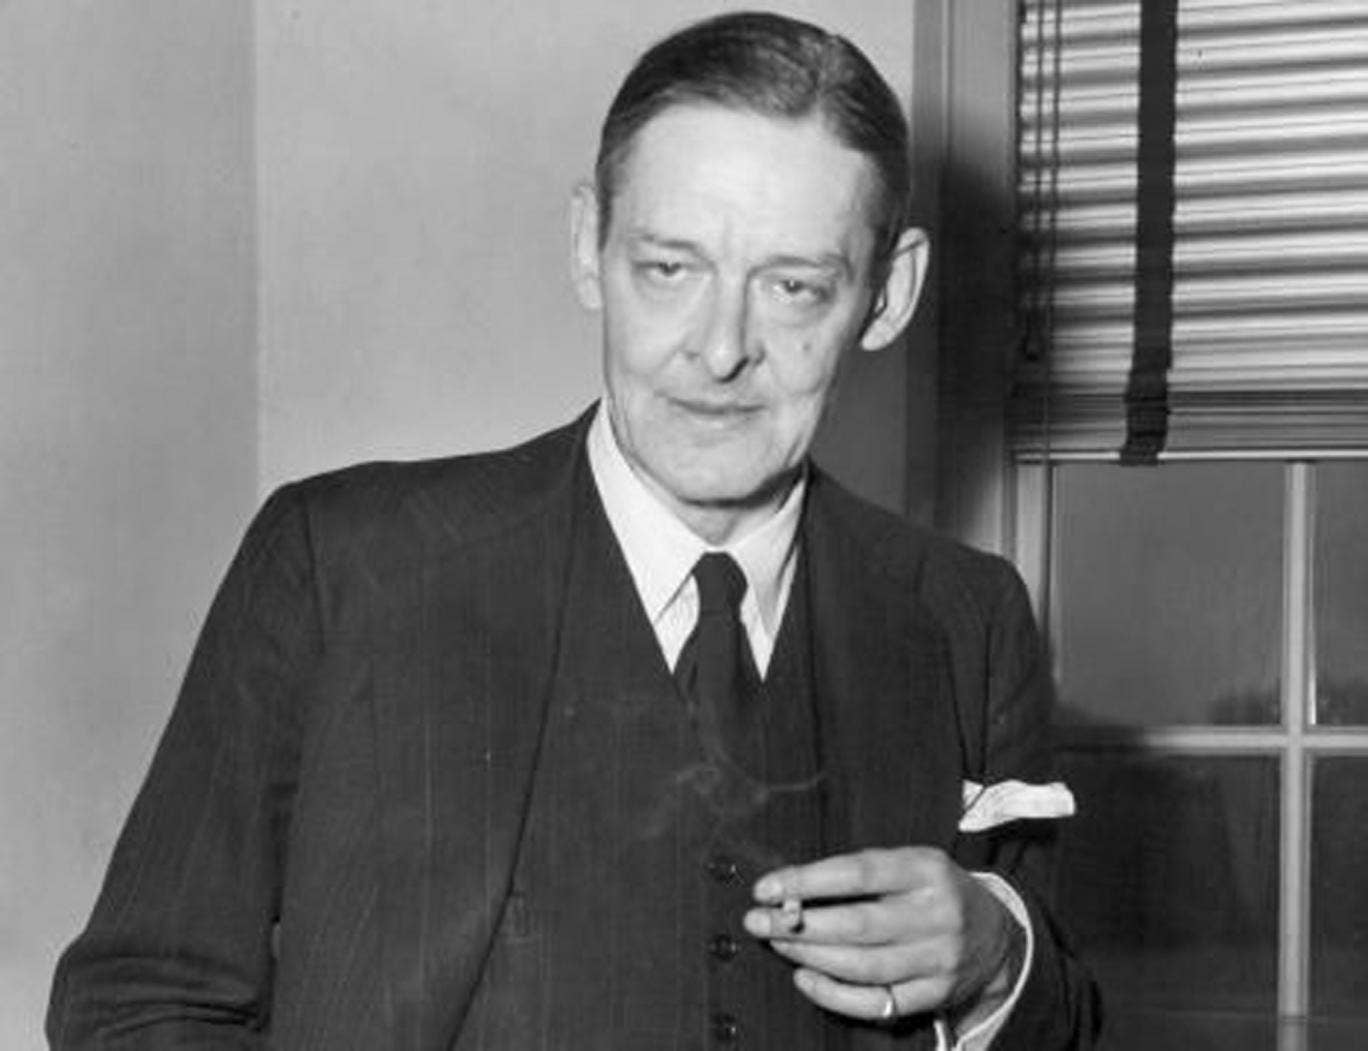 TS Eliot: The pop star's poet